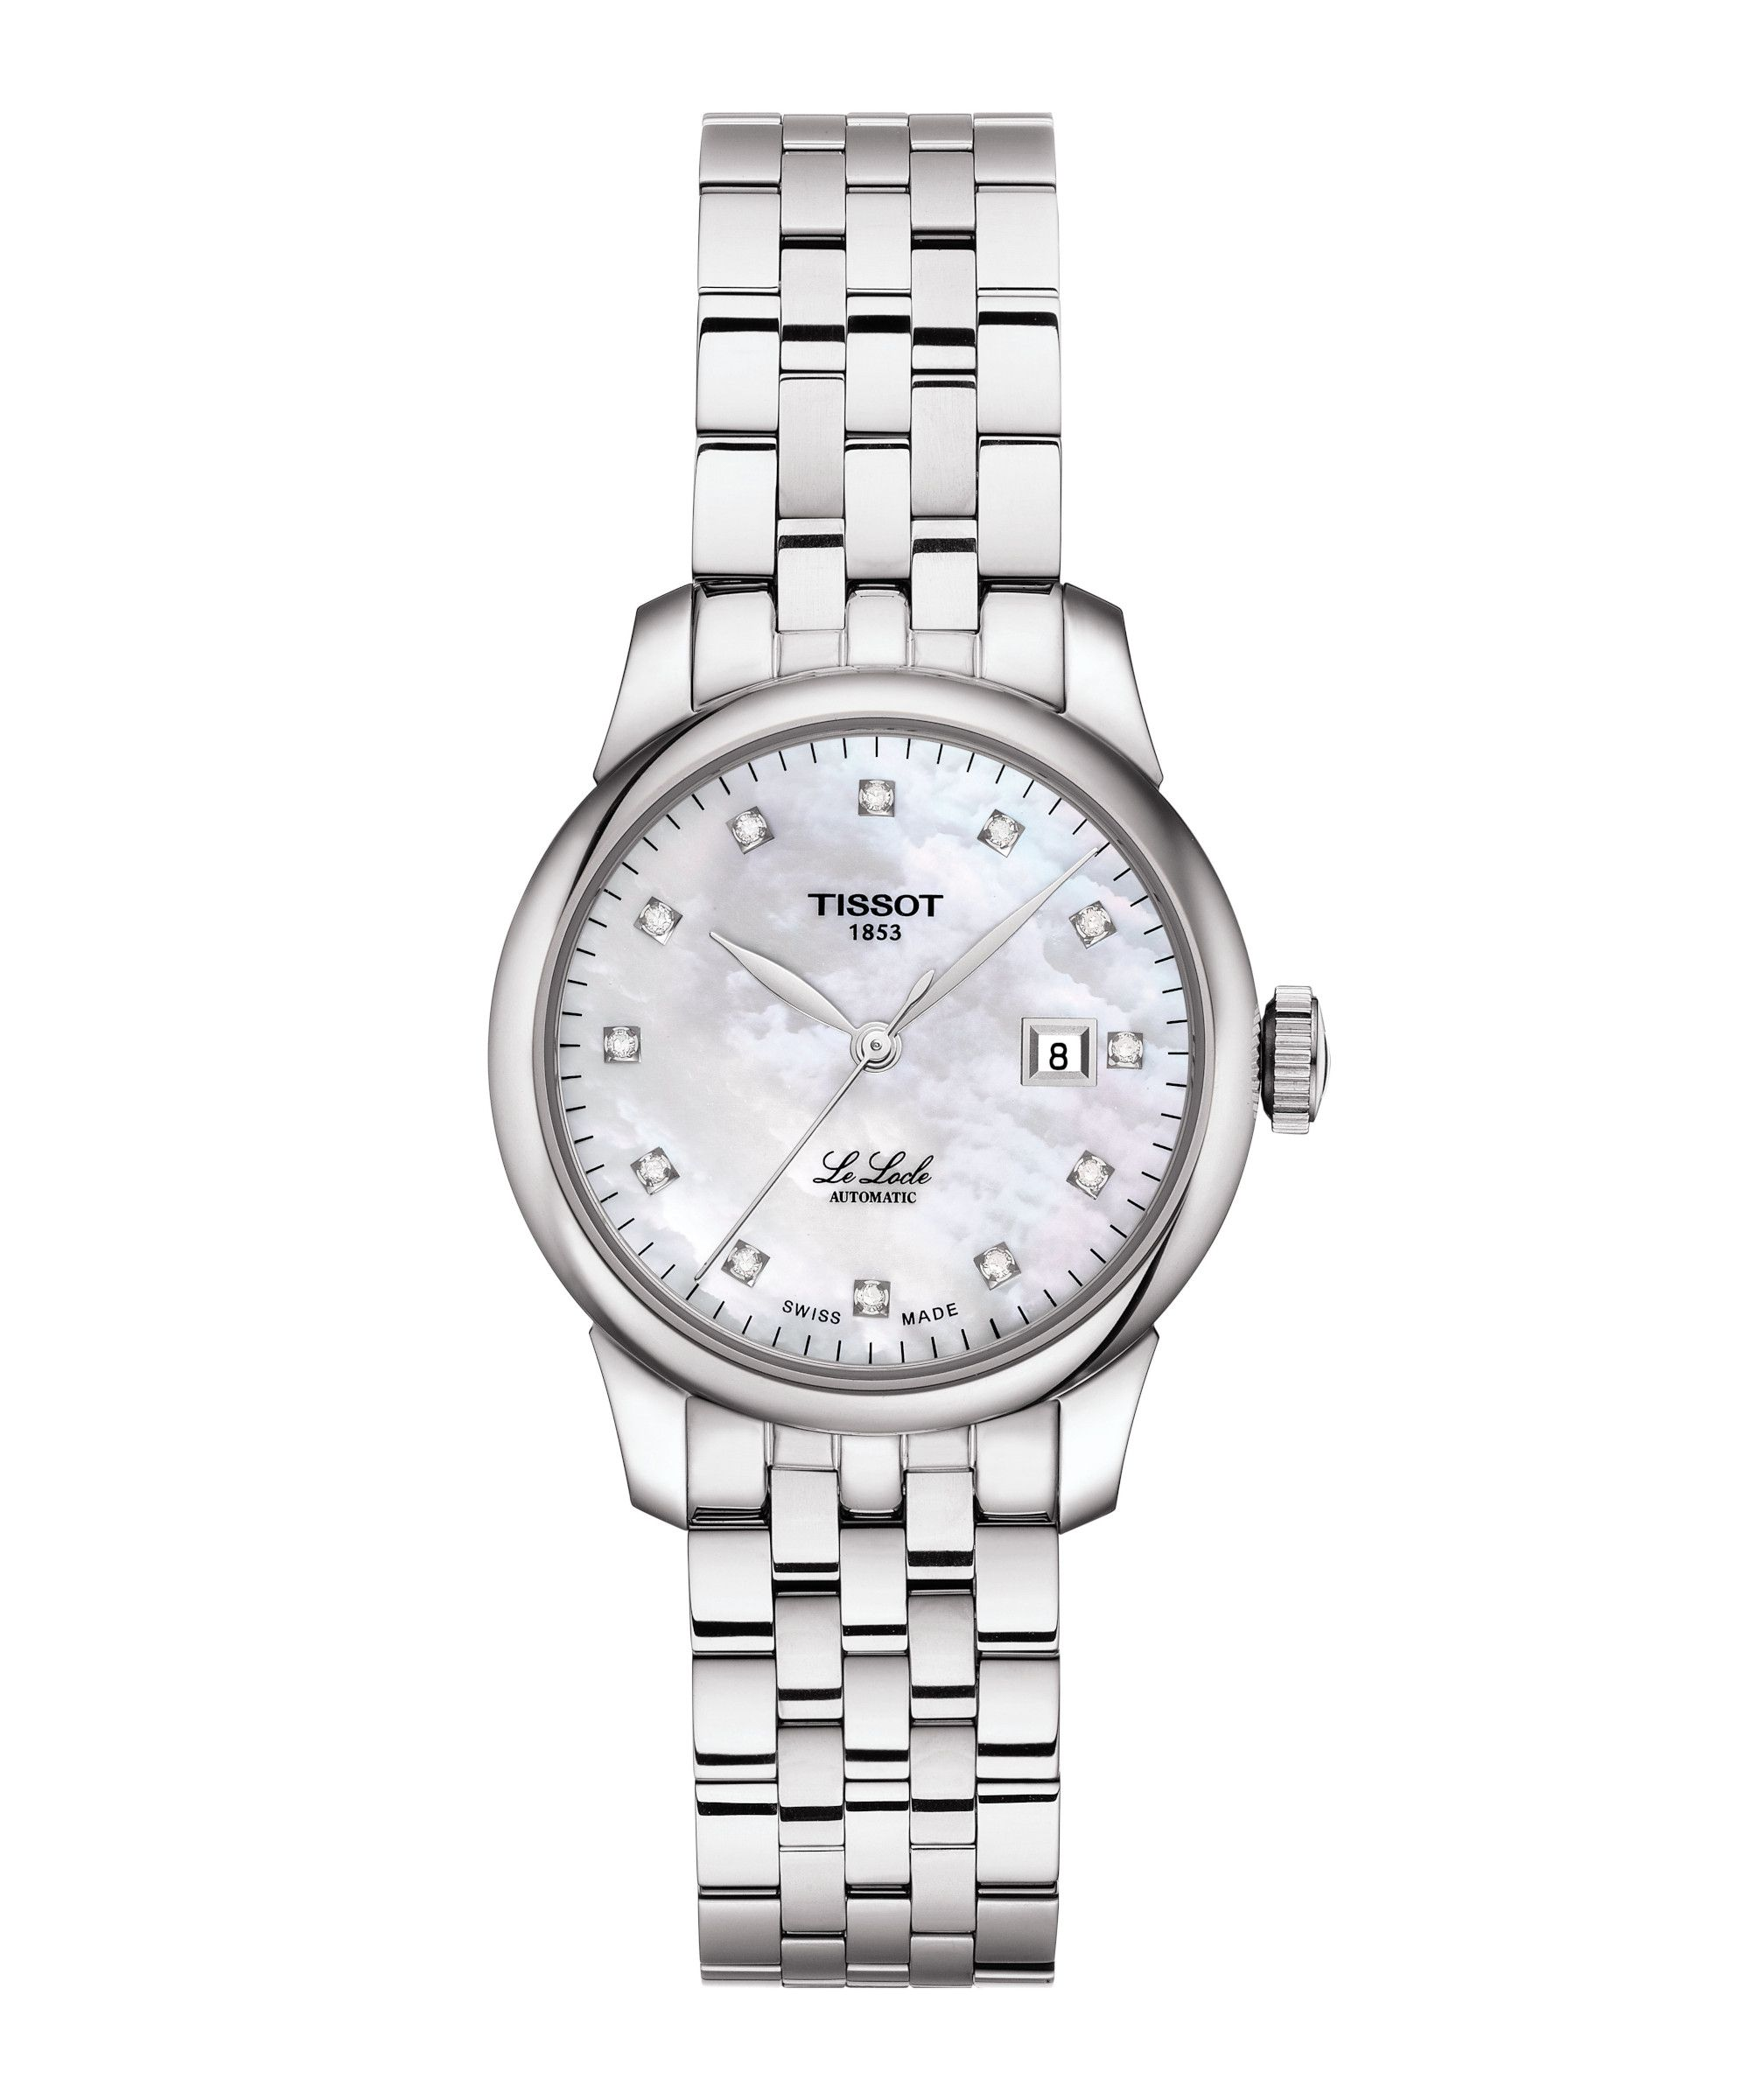 Tissot Le Locle Automatic Lady - 15215